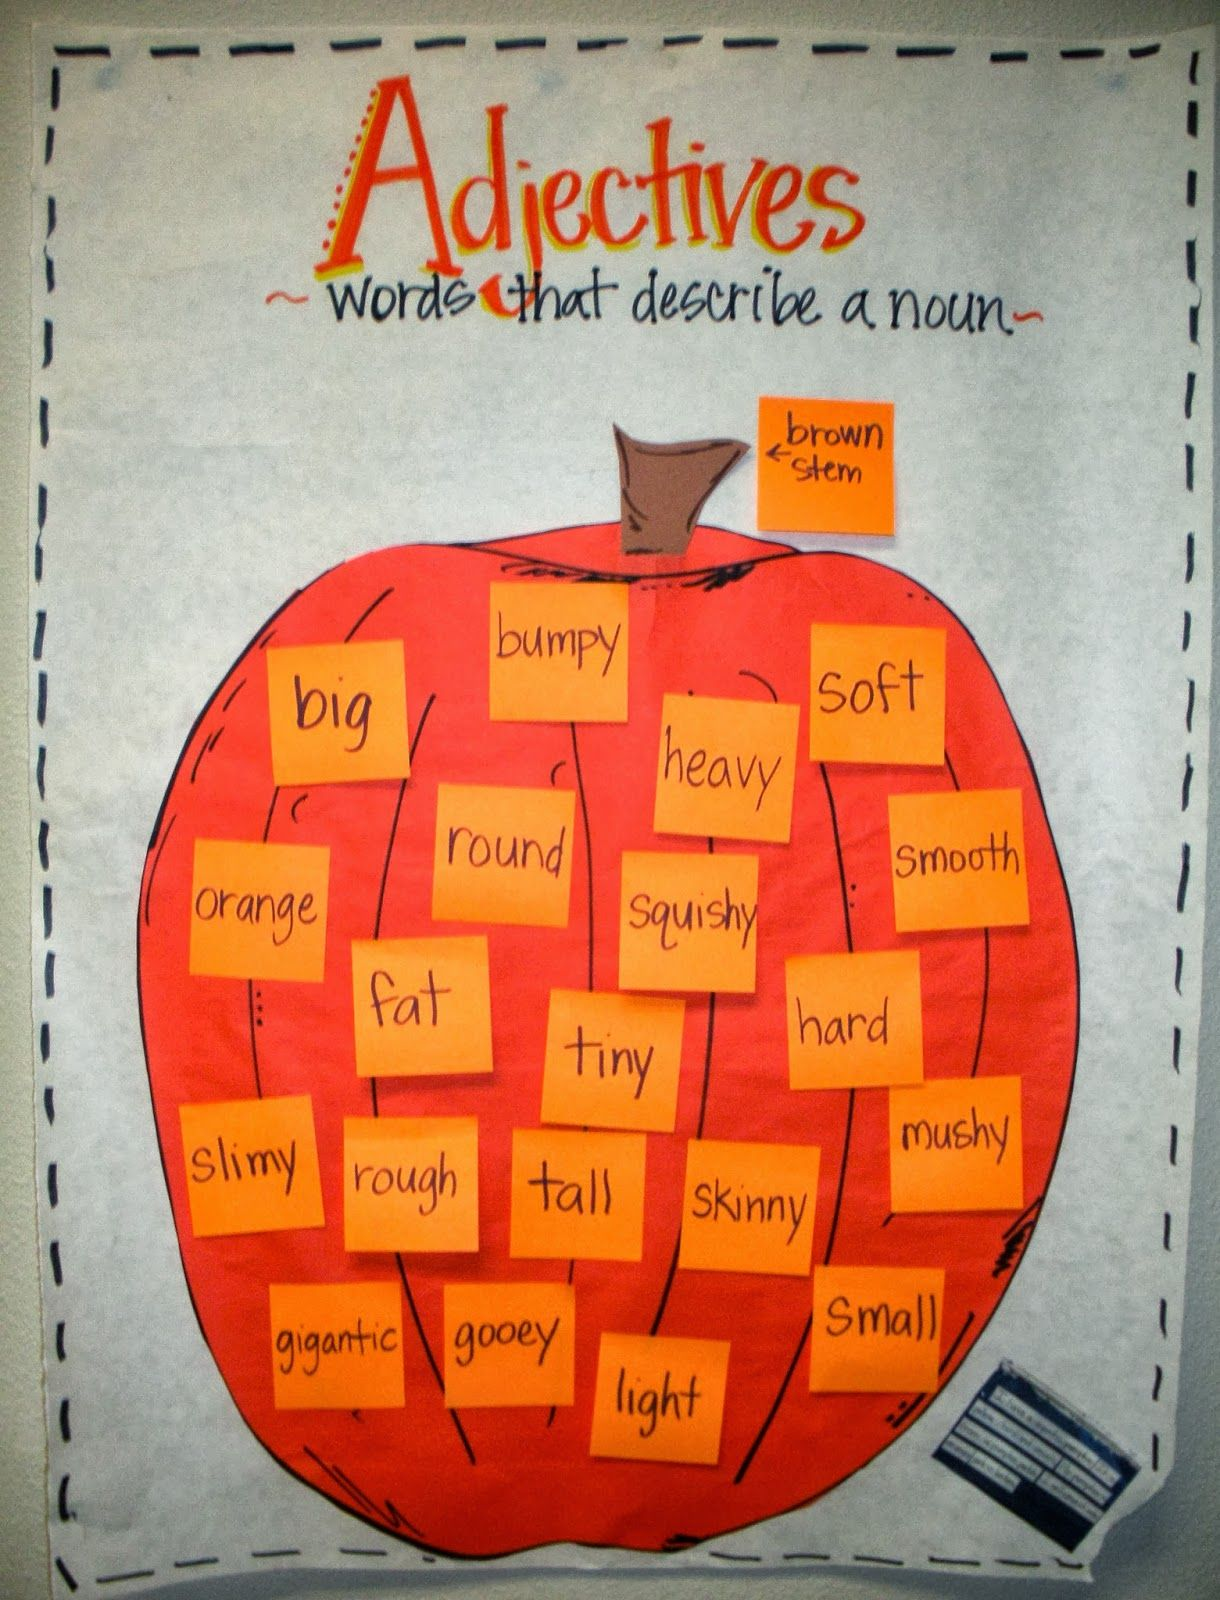 Worksheet First Grade Adjectives pumpkin adjectives parts of speech pinterest anchor charts cute chart rowdy in first grade and reading rings like the idea posting a picture that students choose